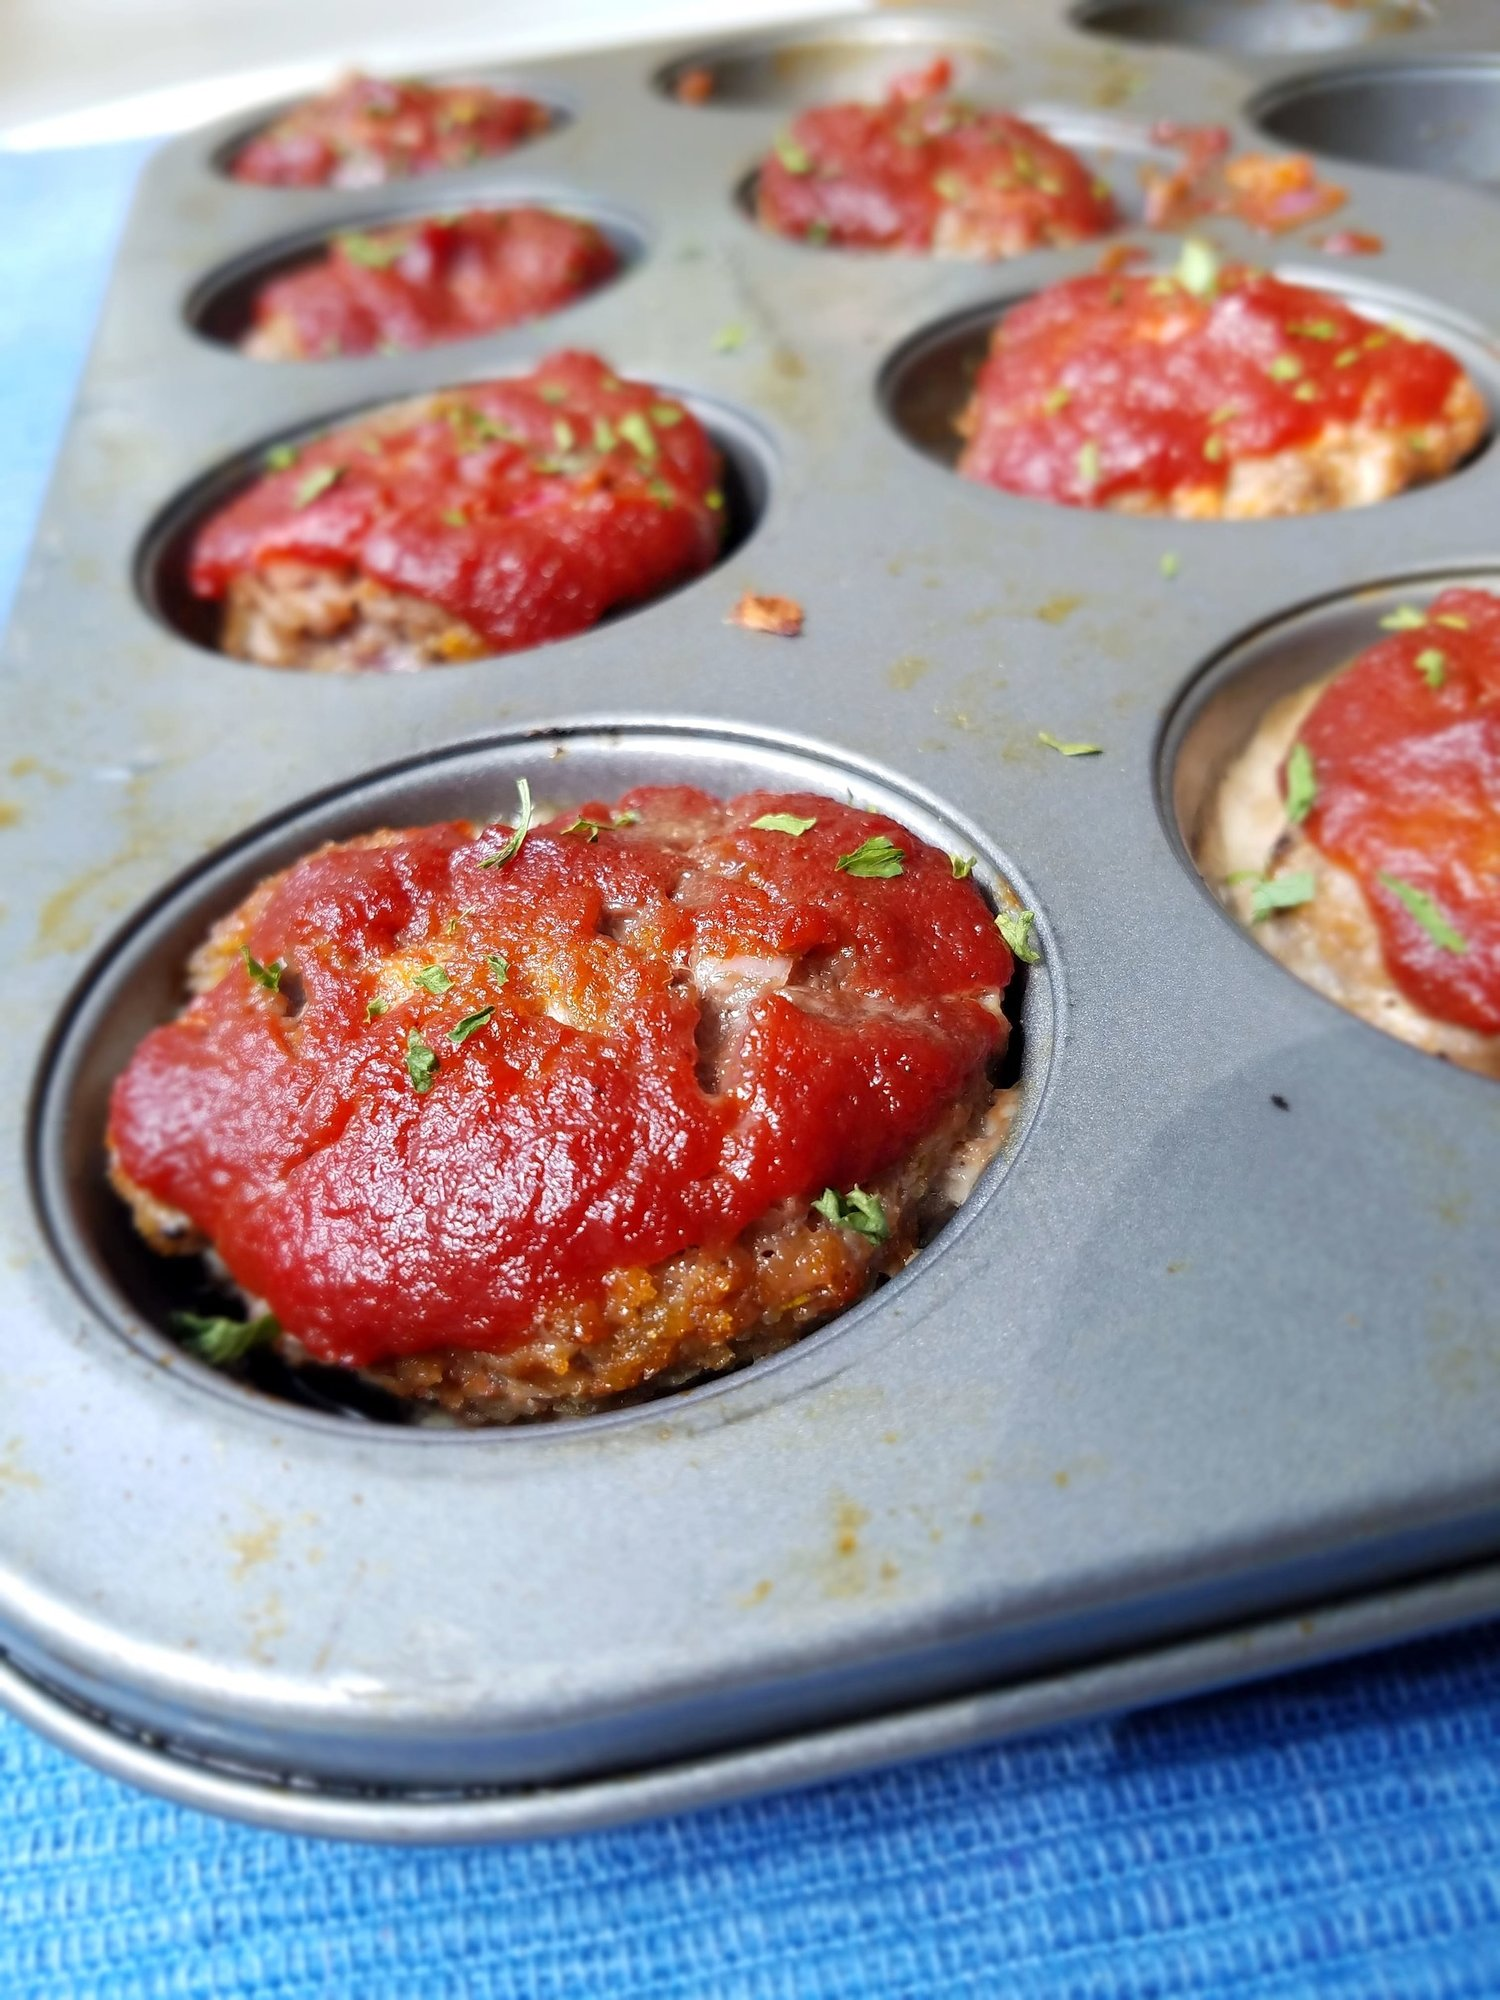 Mini Meatloaf - Adapted from The Mermaid with Muscles